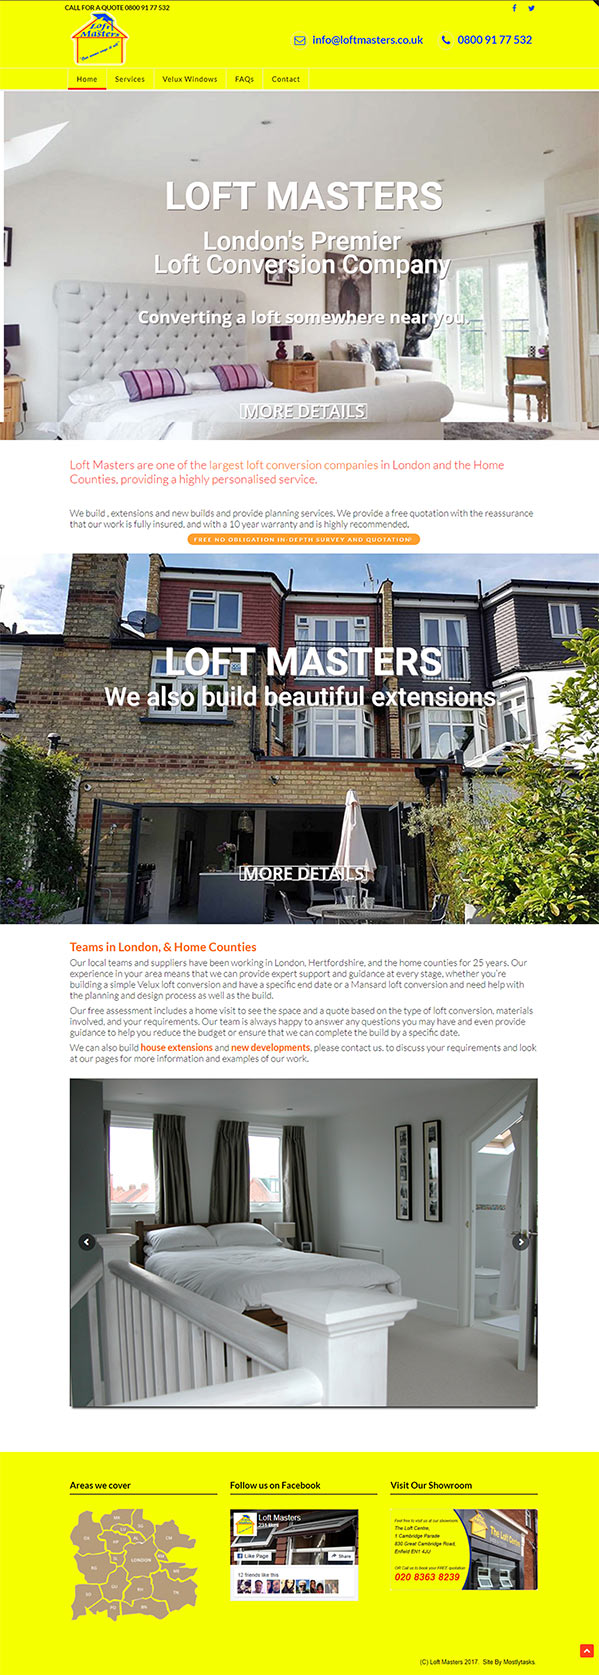 Loft-Conversions-Company-Enfield,-London-featured